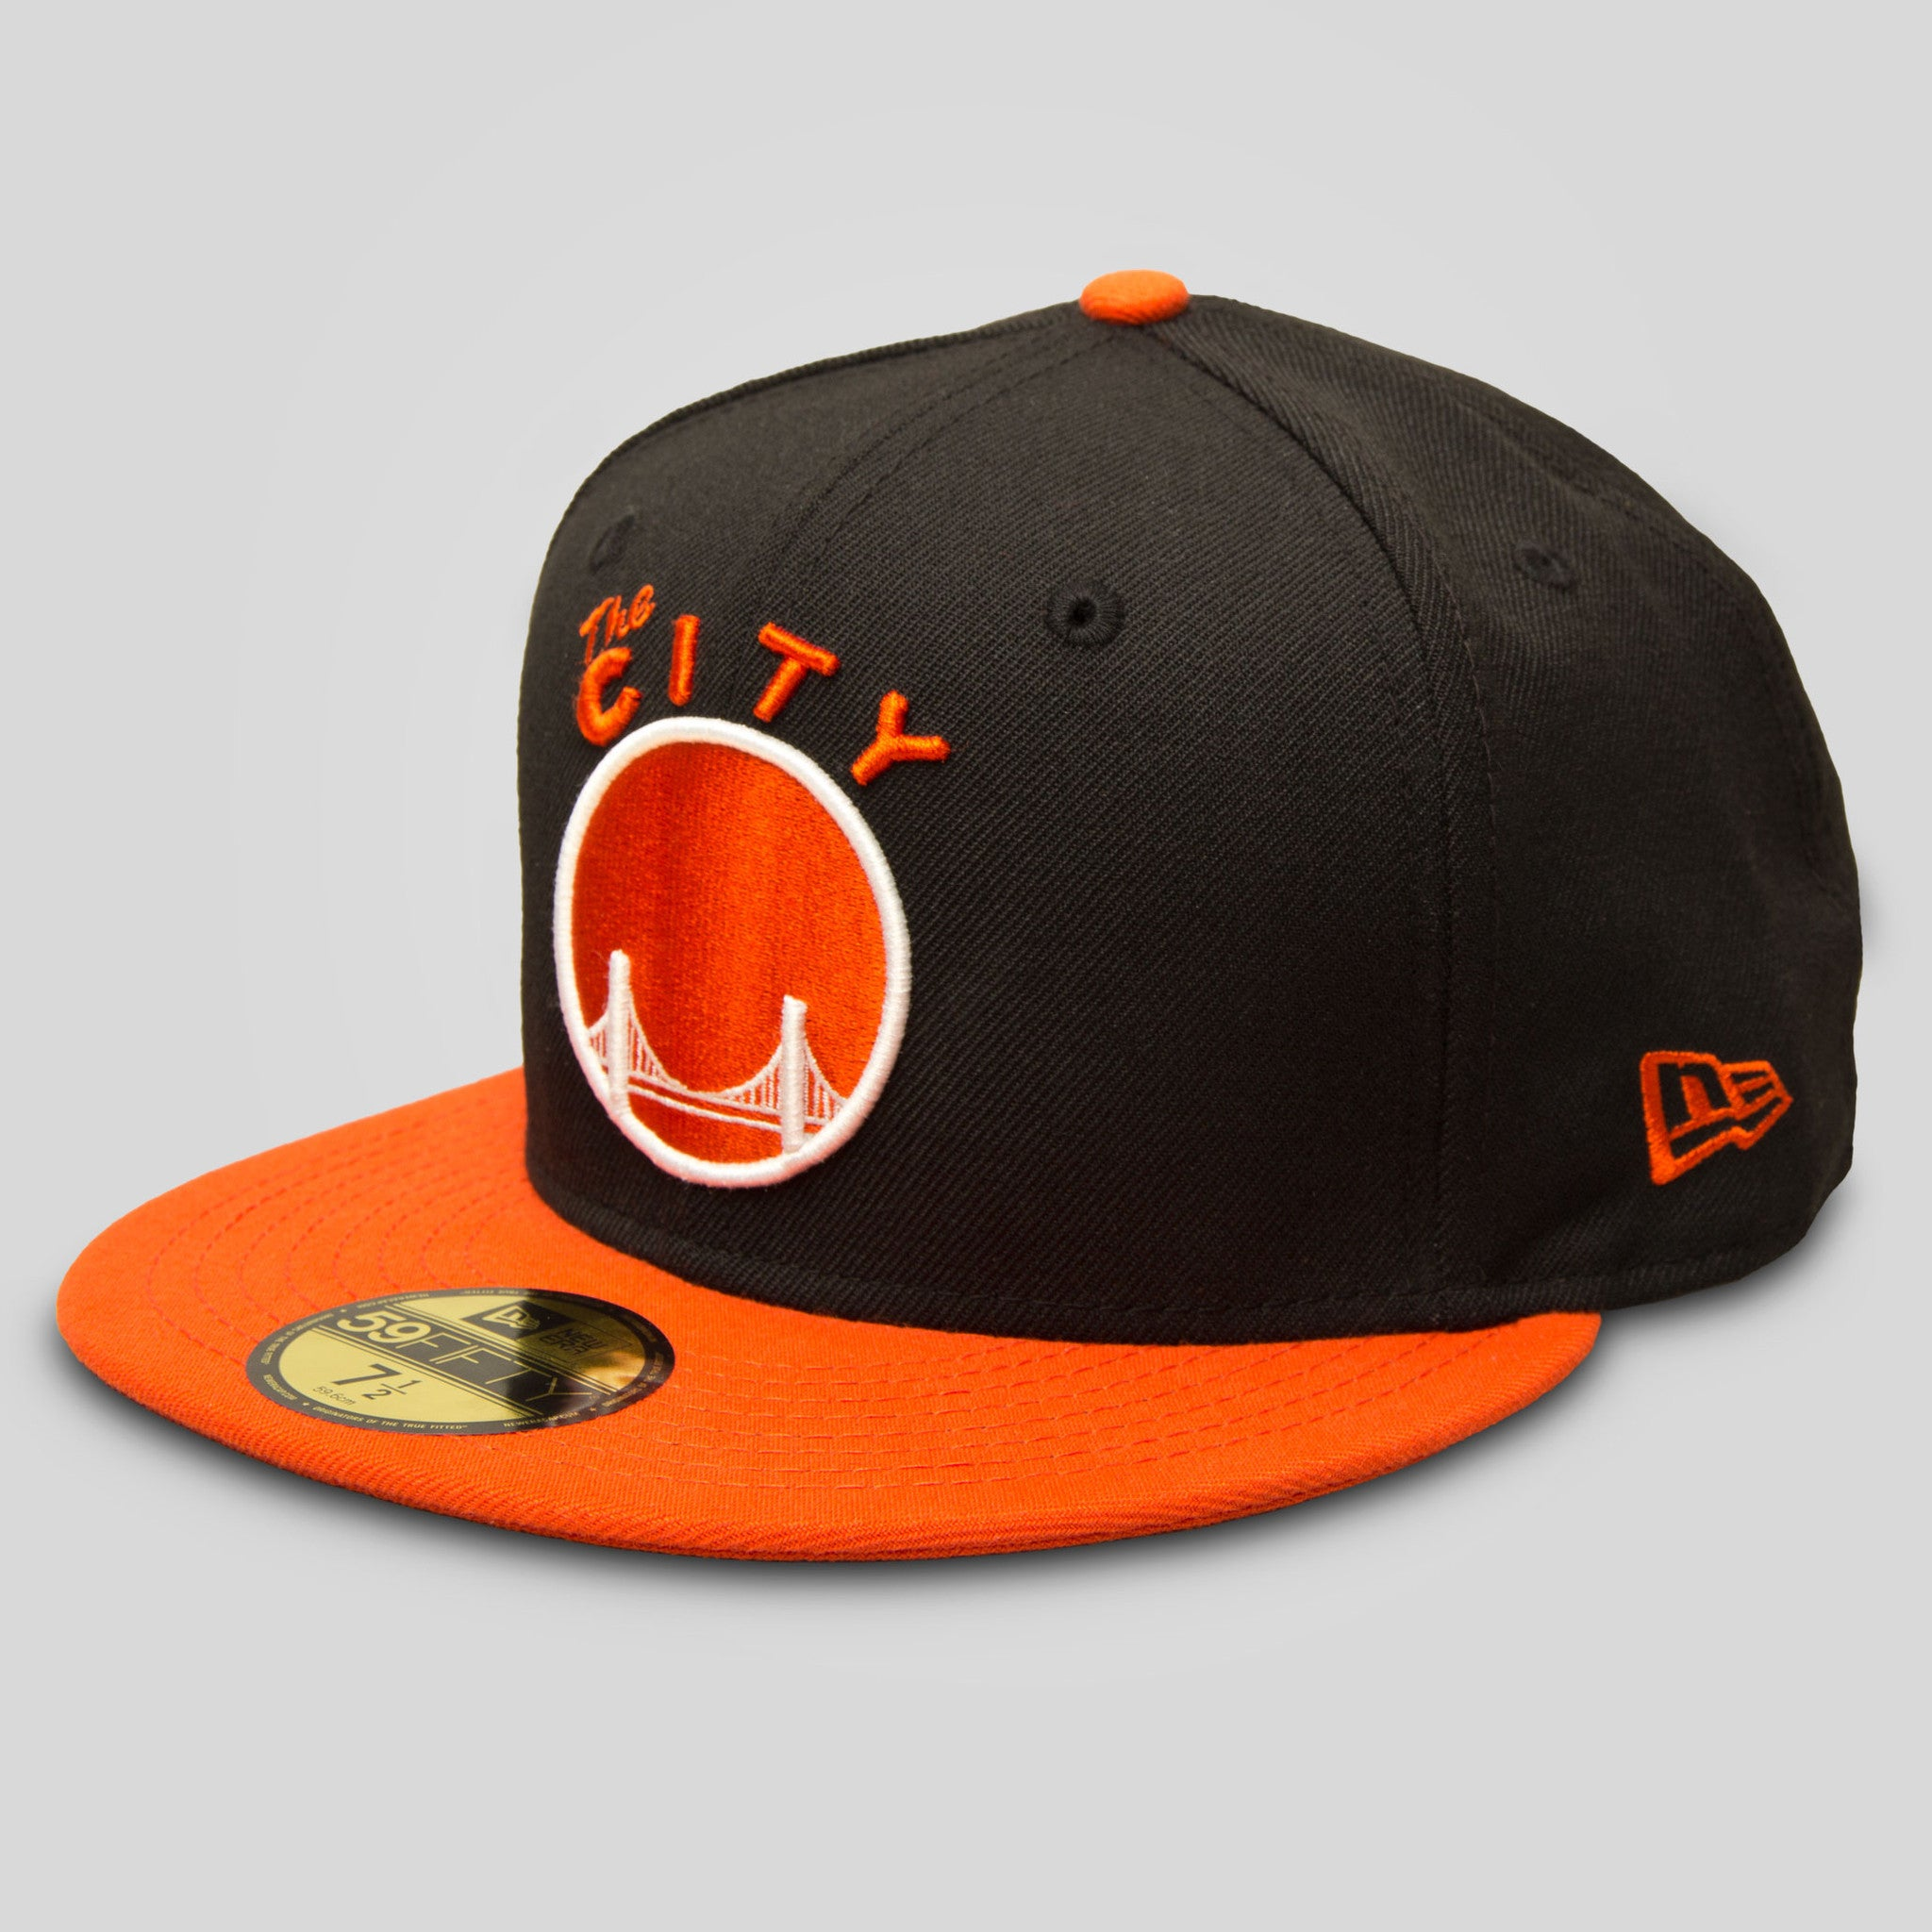 4c37afadfa916 Upper Playground - Lux - THE CITY New Era Fitted Cap in Black Orange